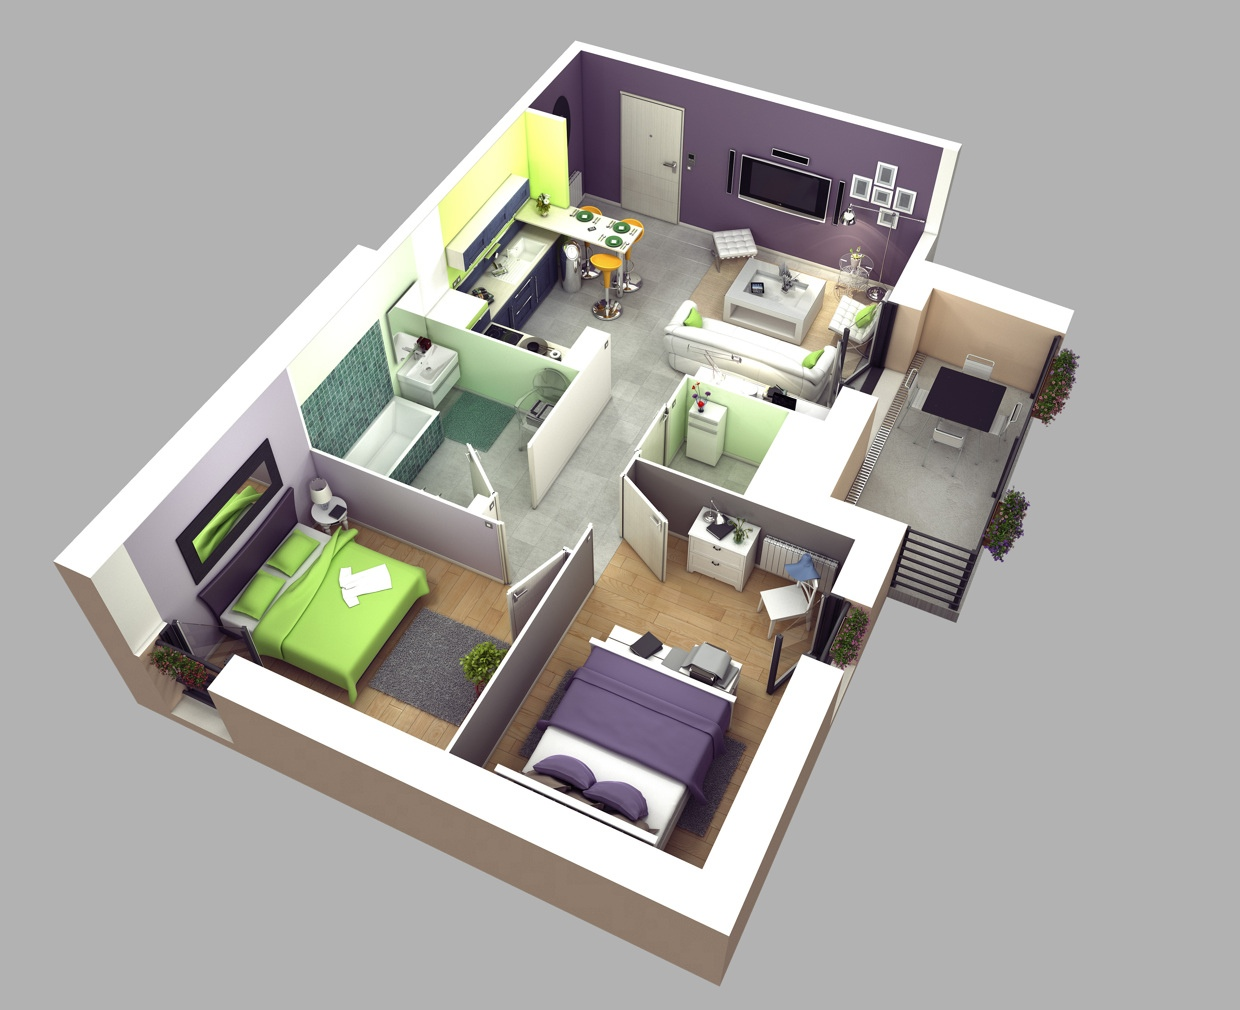 2 bedroom apartment house plans Home design house plans